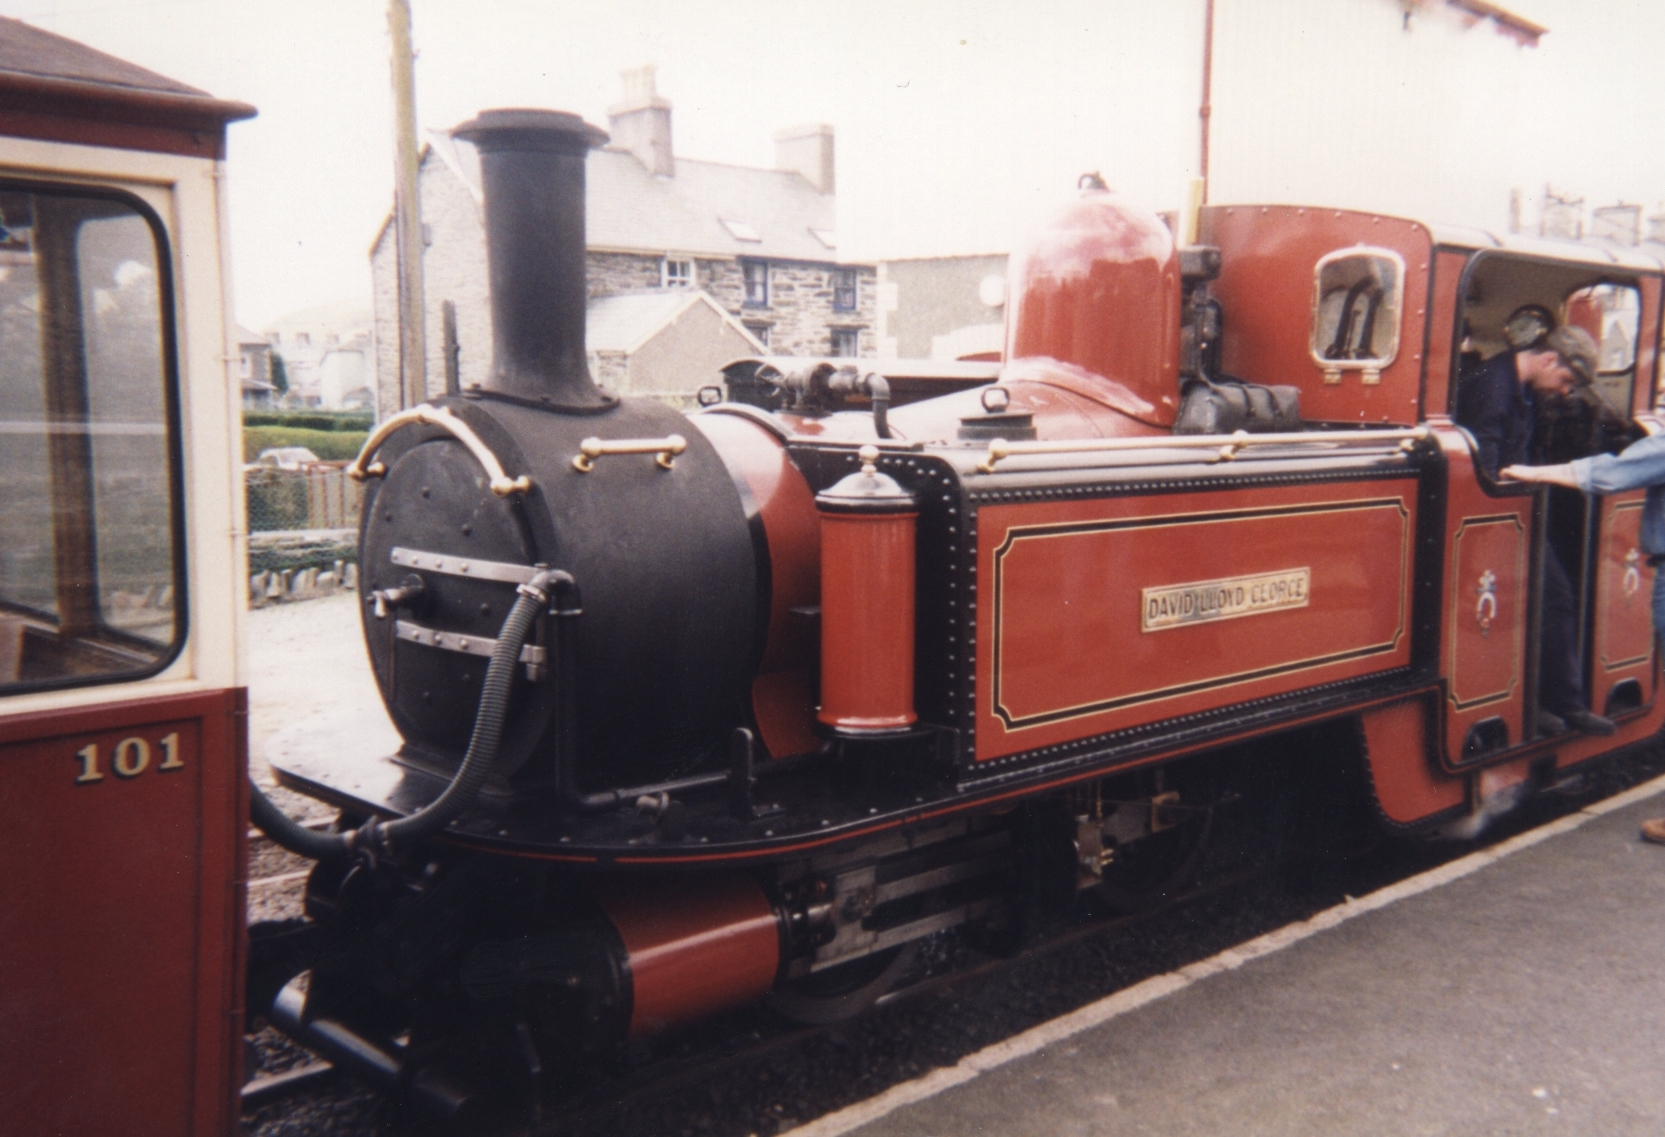 Red steam train, with the name David Lloyd George displayed on a metal panel on the side of the locomotive.